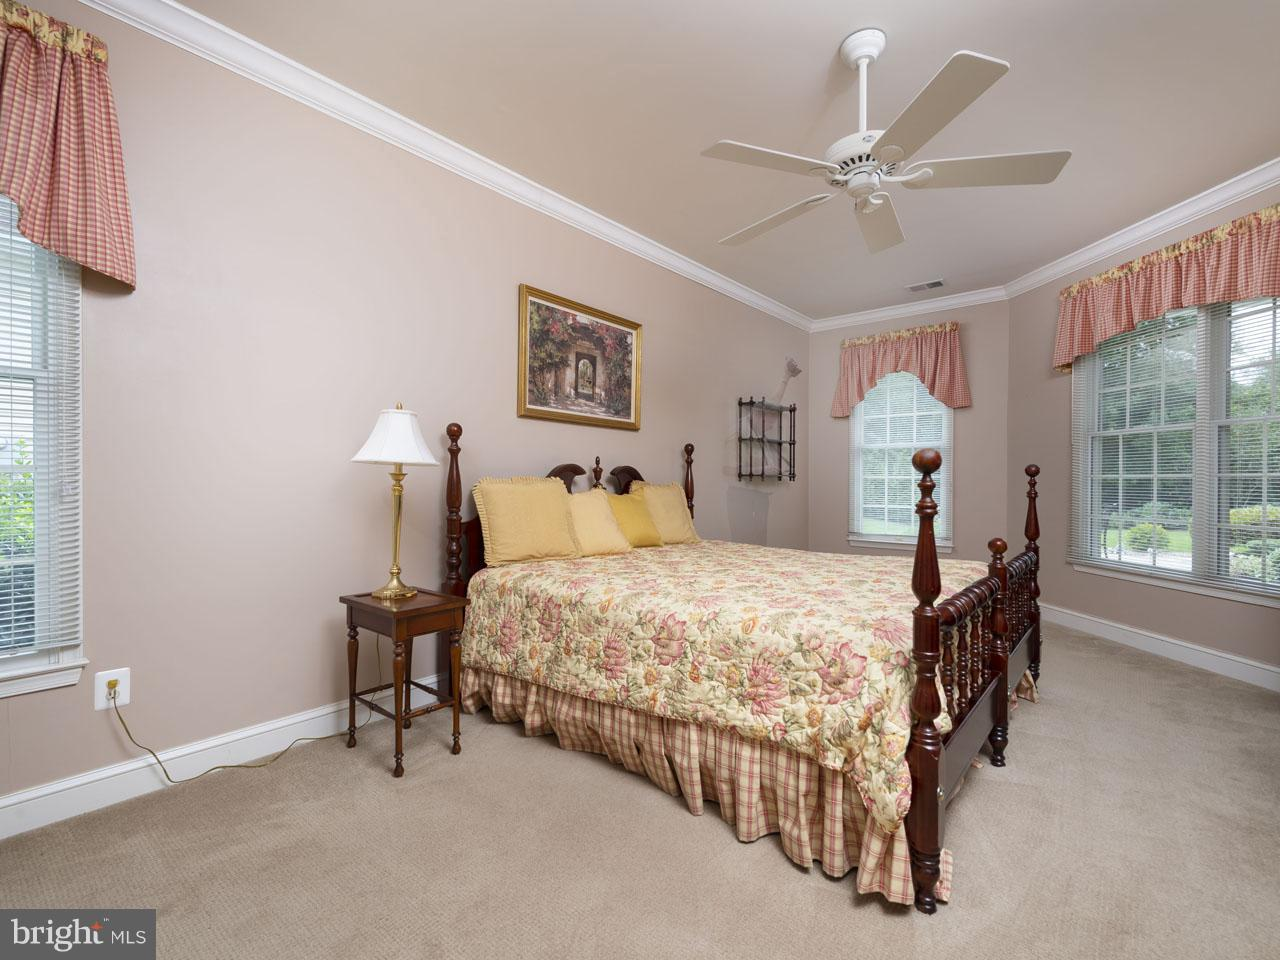 1005040466-300638083714-2021-07-22-06-45-08        Gainesville Delaware Real Estate For Sale   MLS# 1005040466  - Best of Northern Virginia